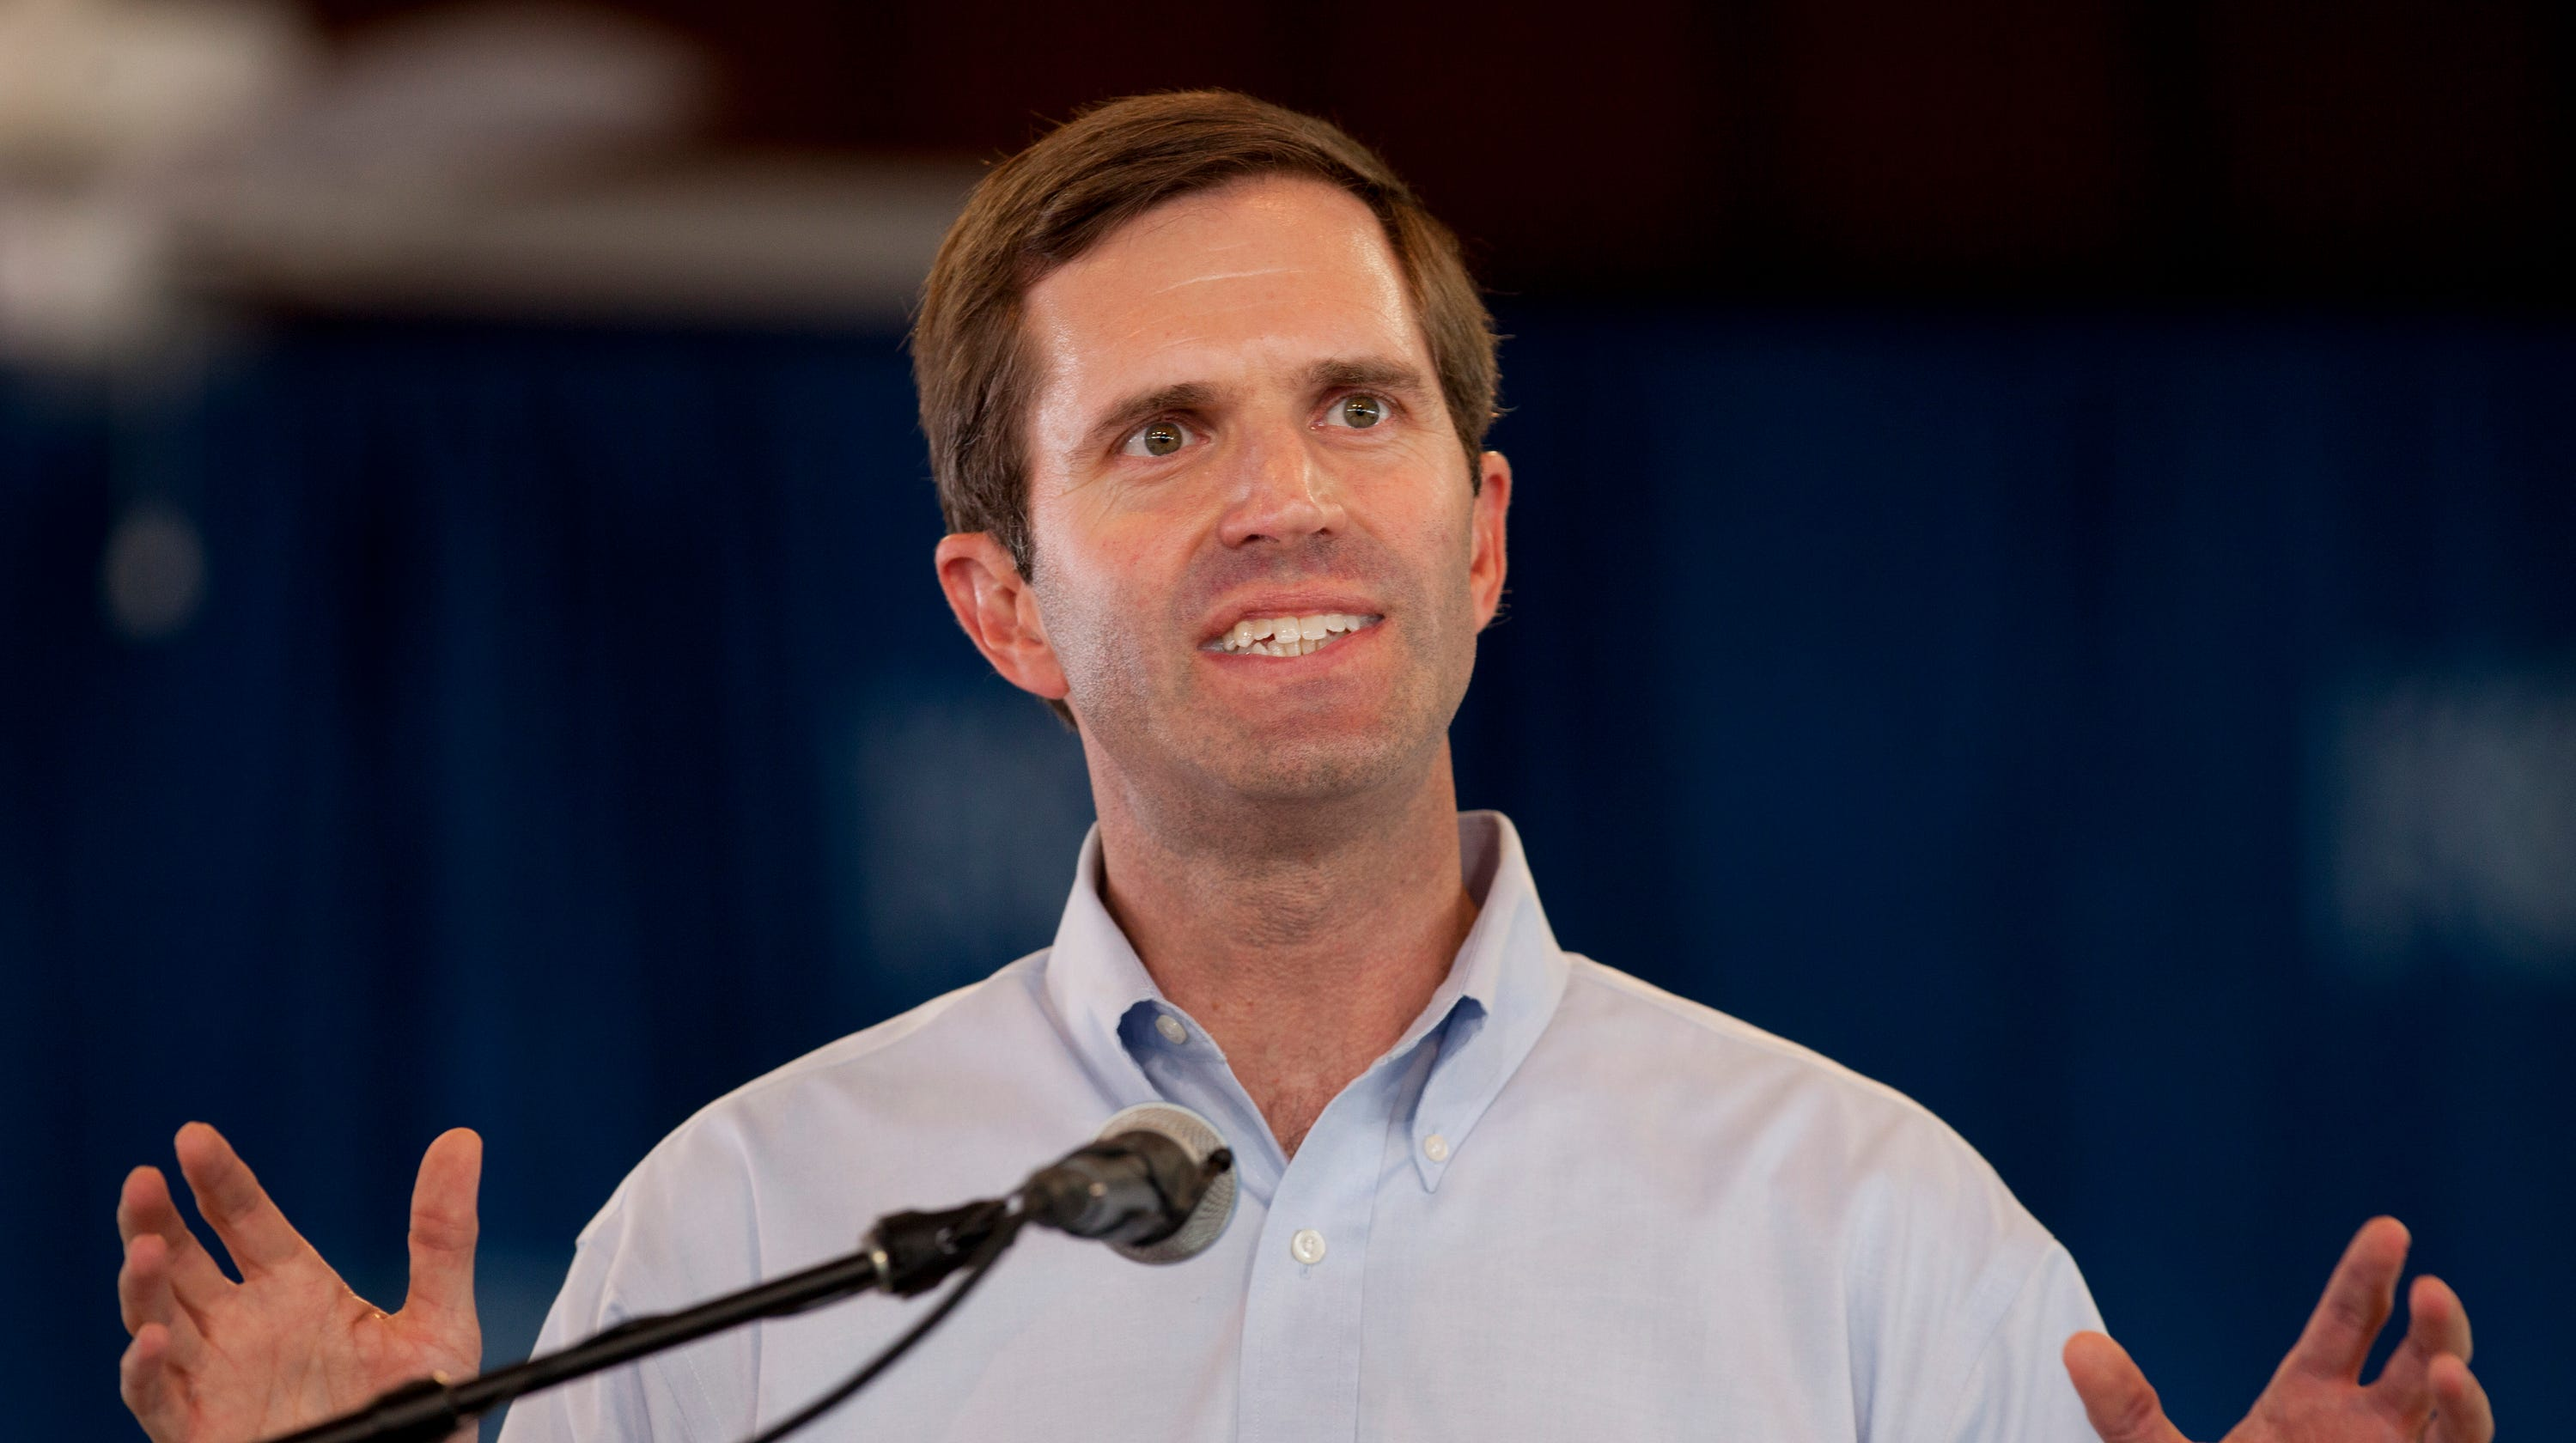 andy beshear - photo #23